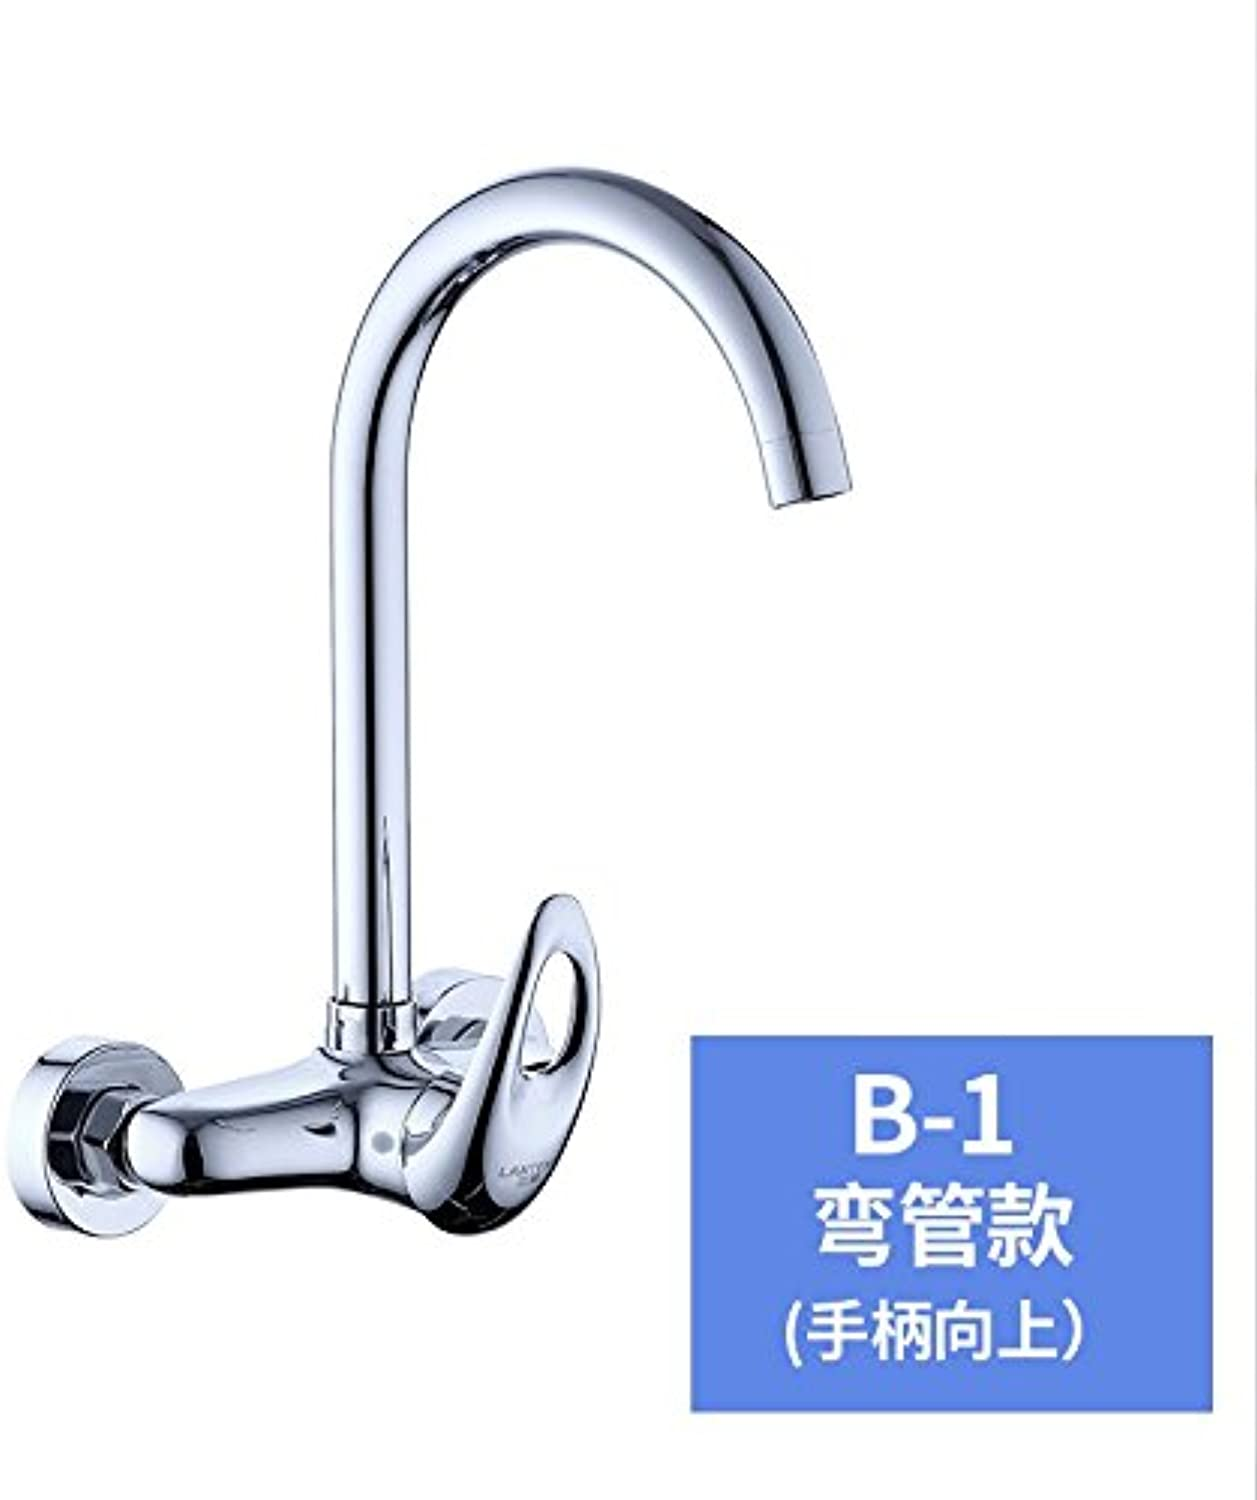 Commercial Single Lever Pull Down Kitchen Sink Faucet Brass Constructed Polished Copper,Wall-Mounted,Kitchen,hot and Cold,Faucet,Double Hole,Sink,Sink Faucet,redating Faucet,E